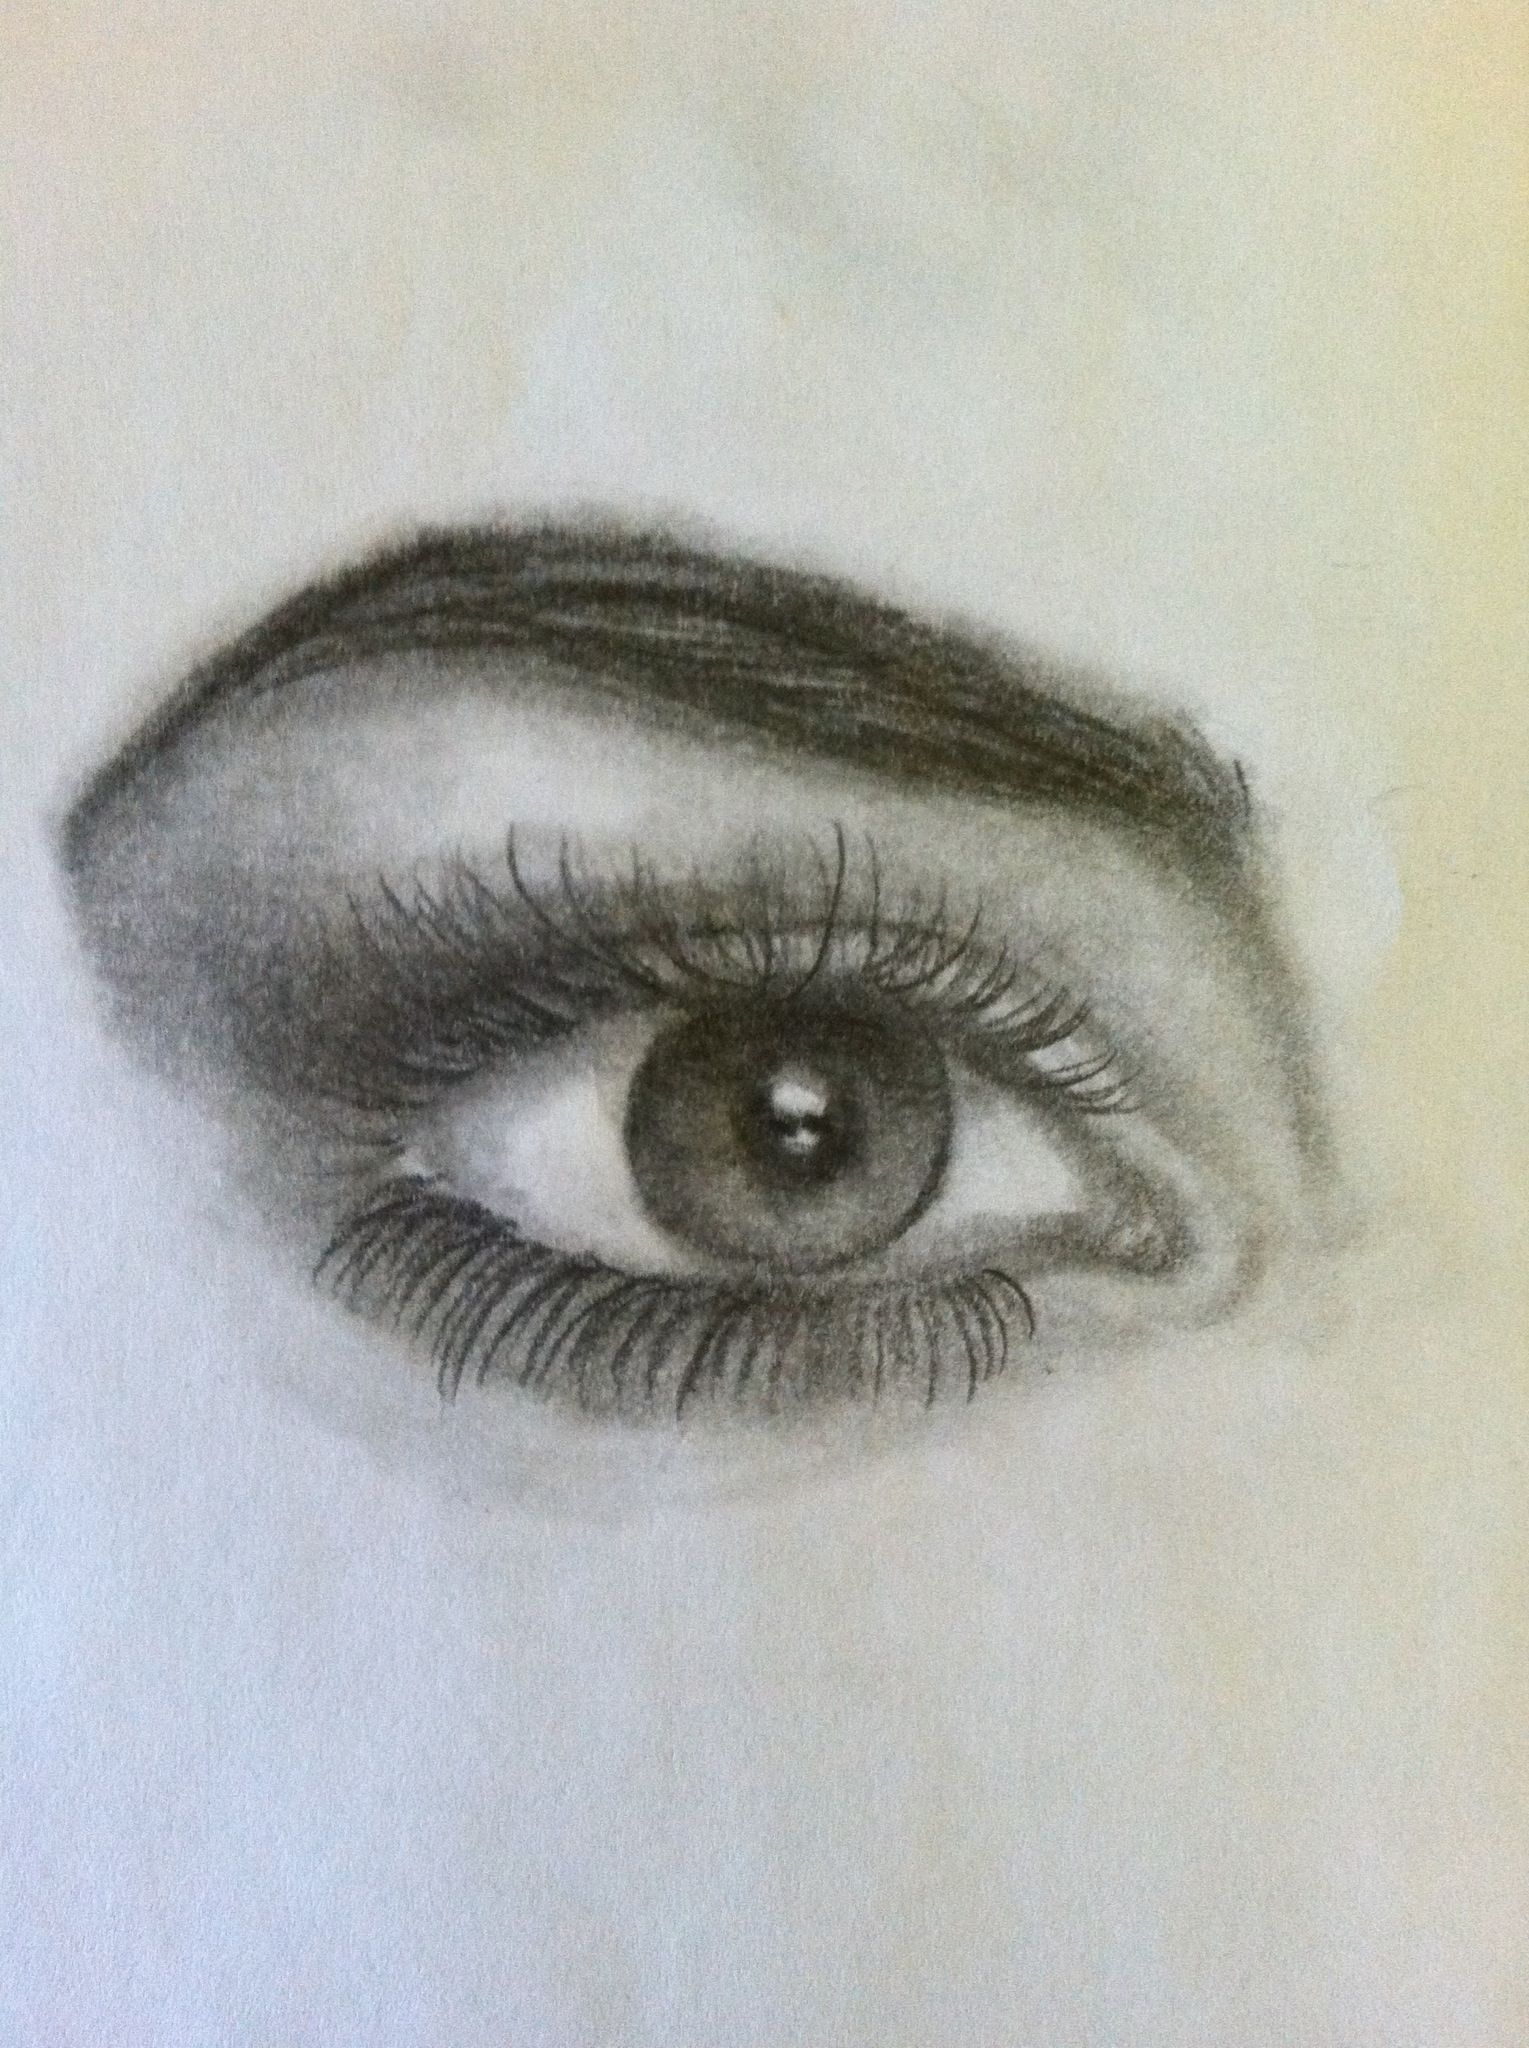 Eye Sketch Mac Eyeshadow And Green Eyes On Pinterest: How To Draw Eyes, At The End Of The Guide On Eyes It Shows